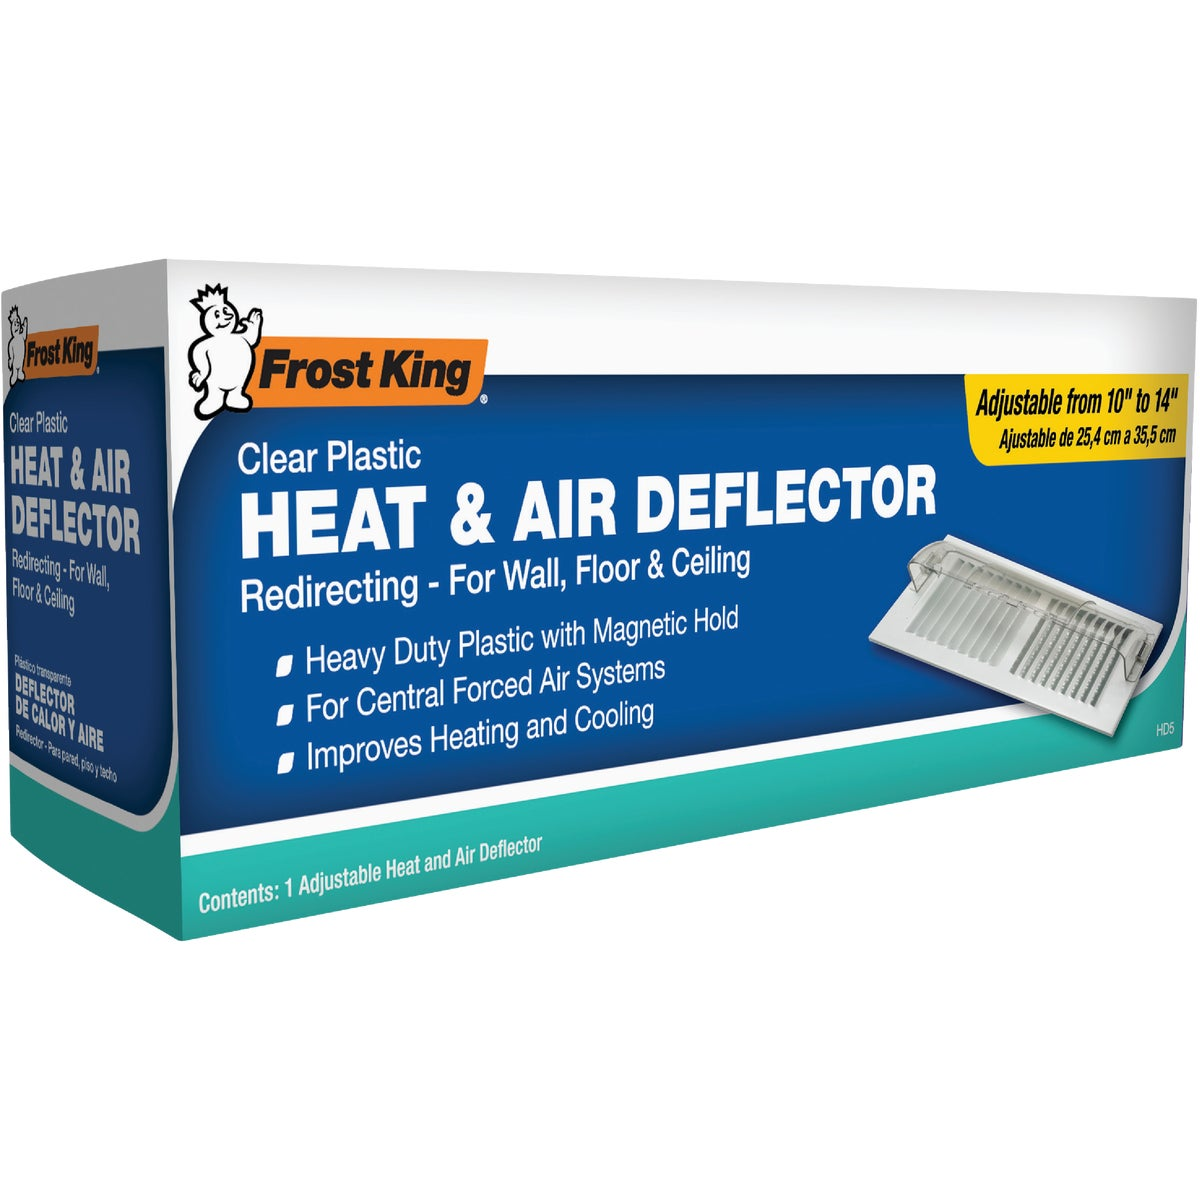 "10-14"" ADJ AIR DEFLECTOR - HD5 by Thermwell Prods Co"